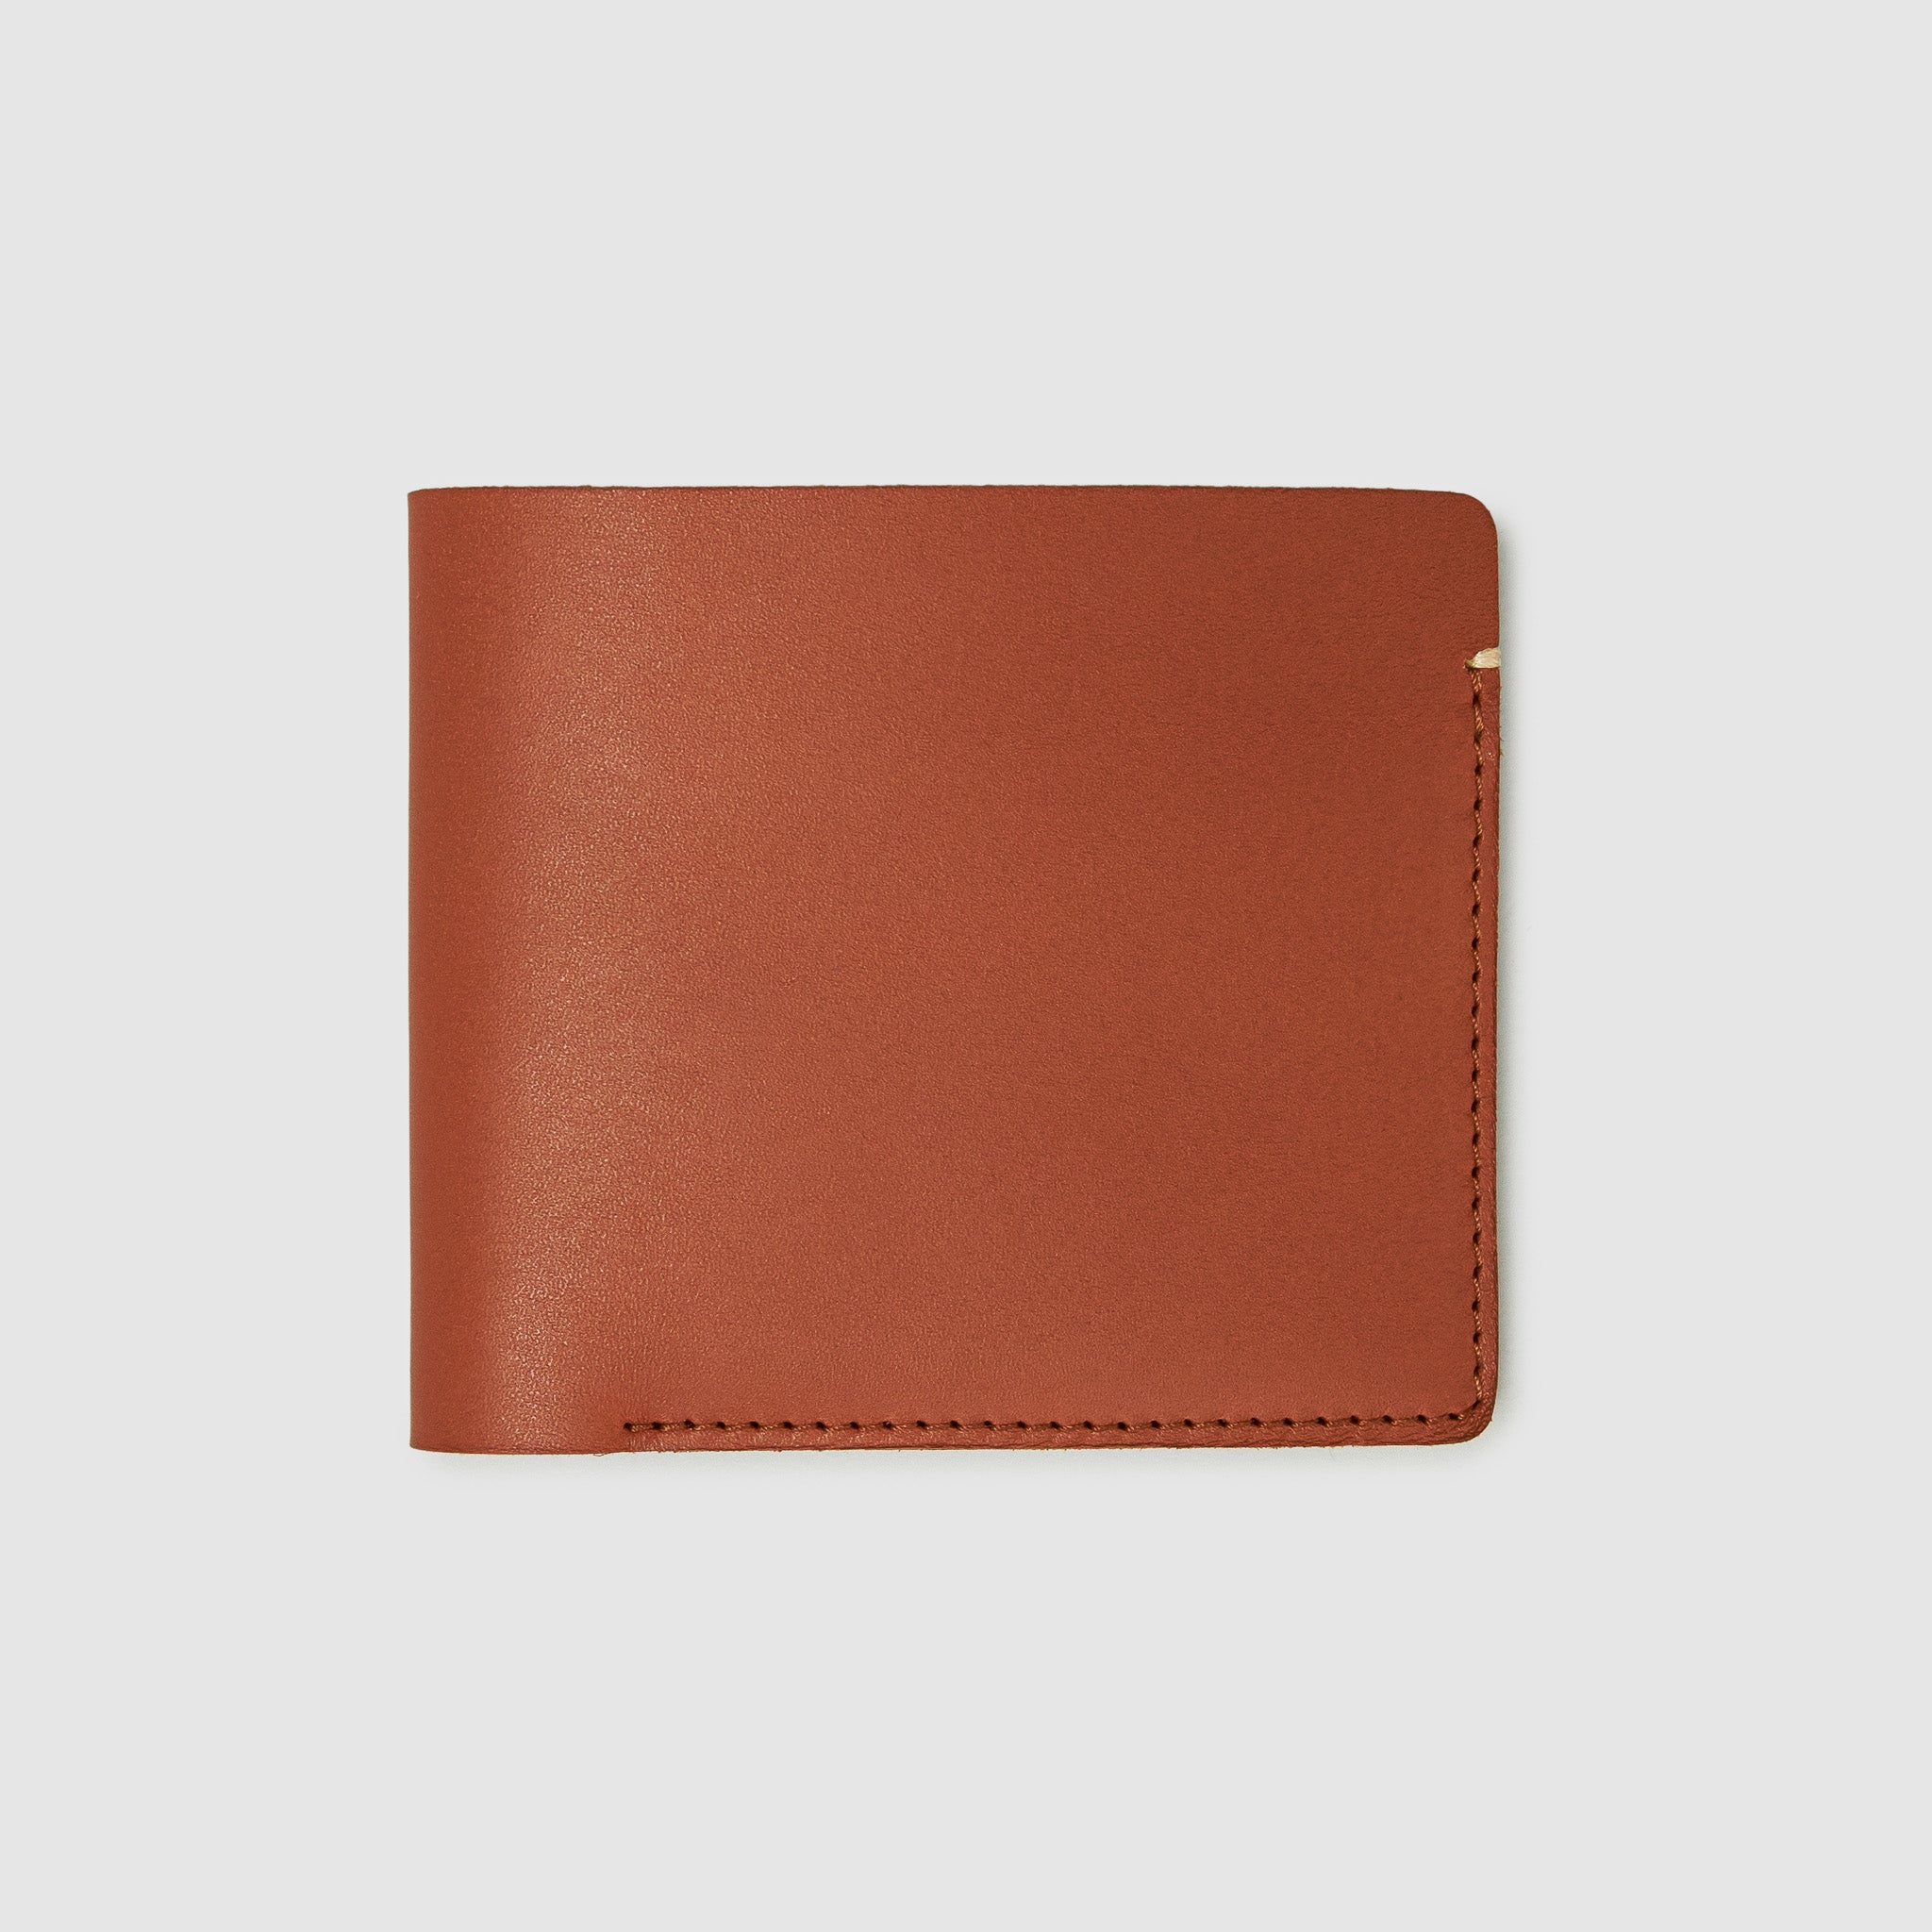 Anson Calder International Billfold Wallet RFID french calfskin leather _cognac